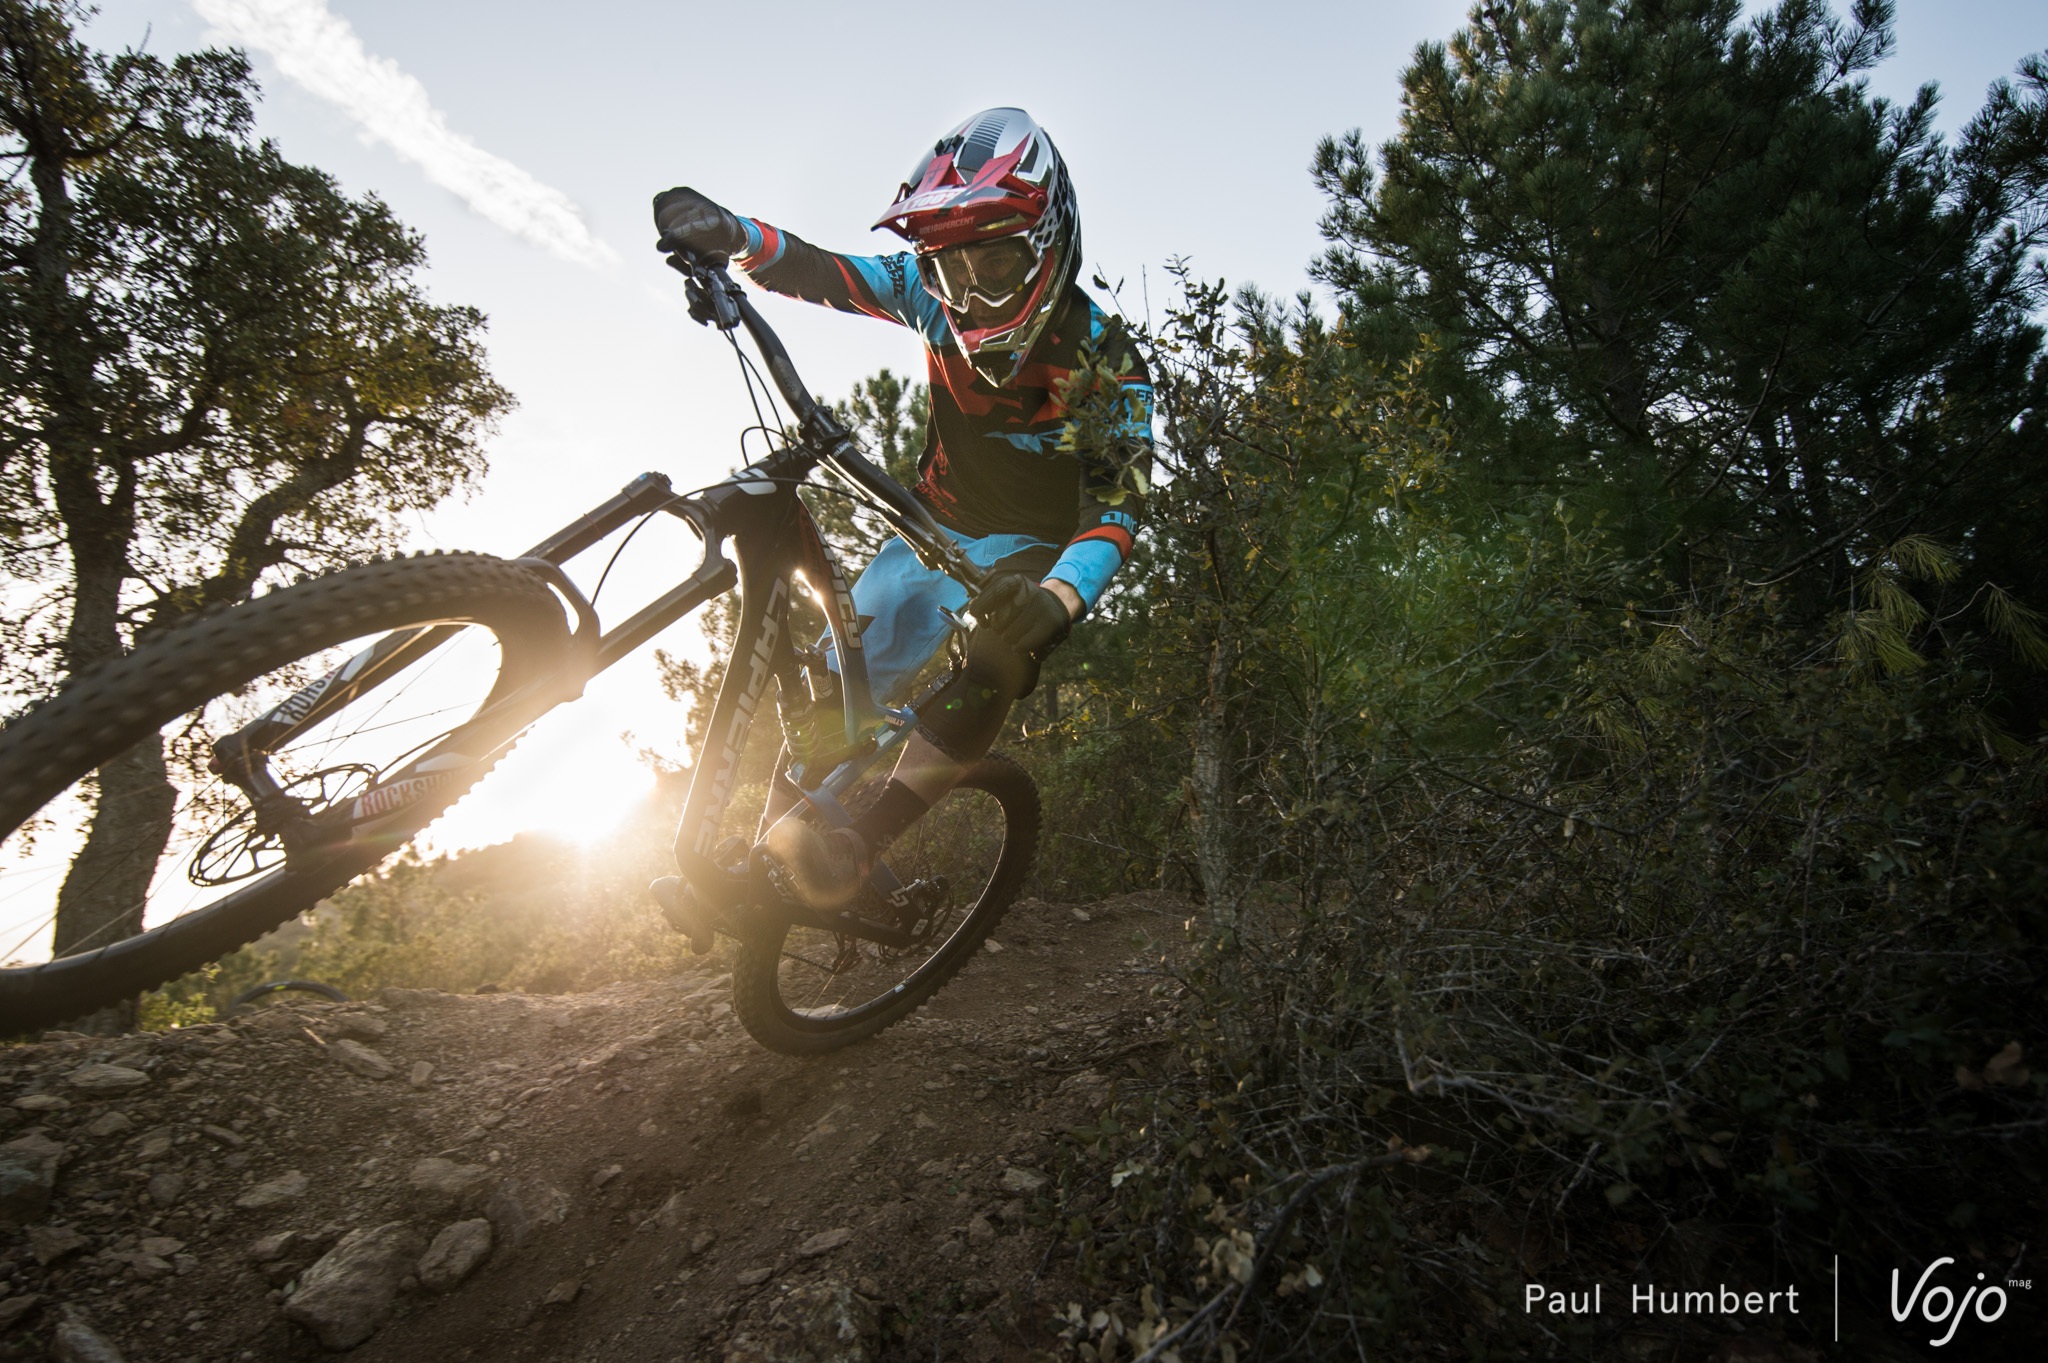 dailly-gallean-azur-bike-park-2017-vojo-paul-humbert-15